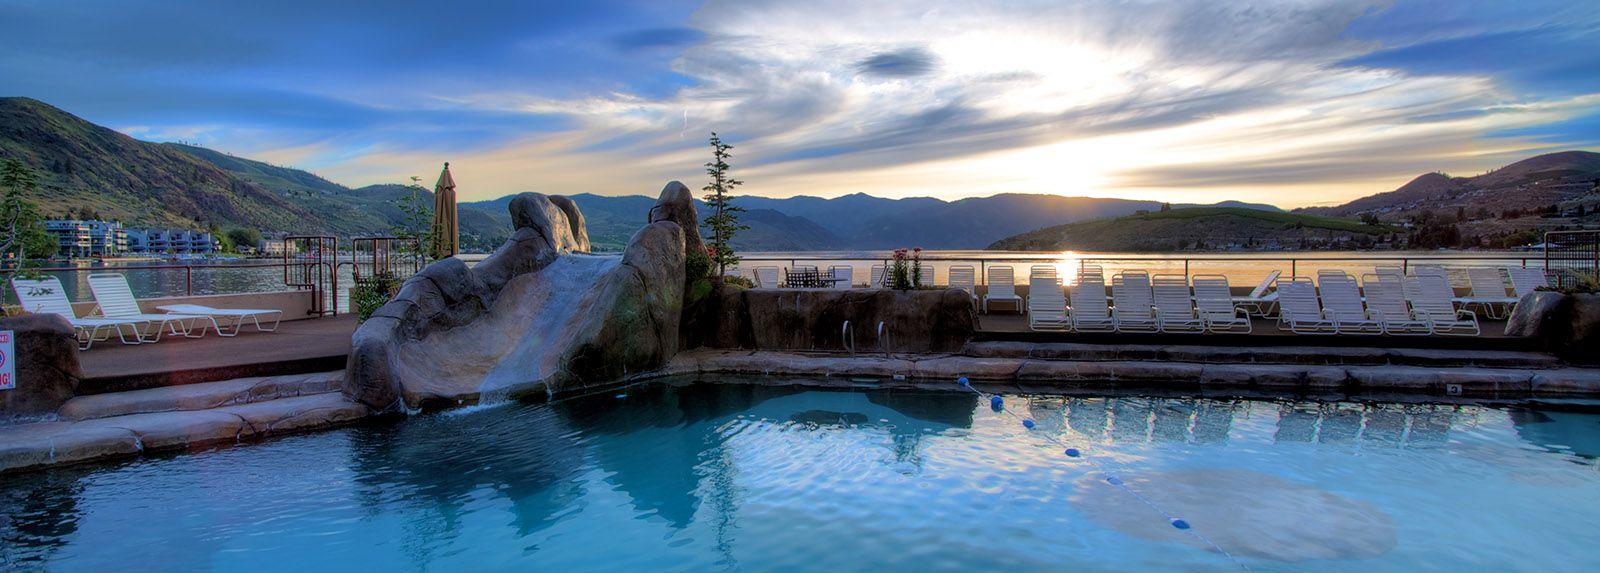 Grandview On The Lake Chelan S Finest Resort Hotel And Conference Center Travel Ideas Pinterest Lakes Resorts